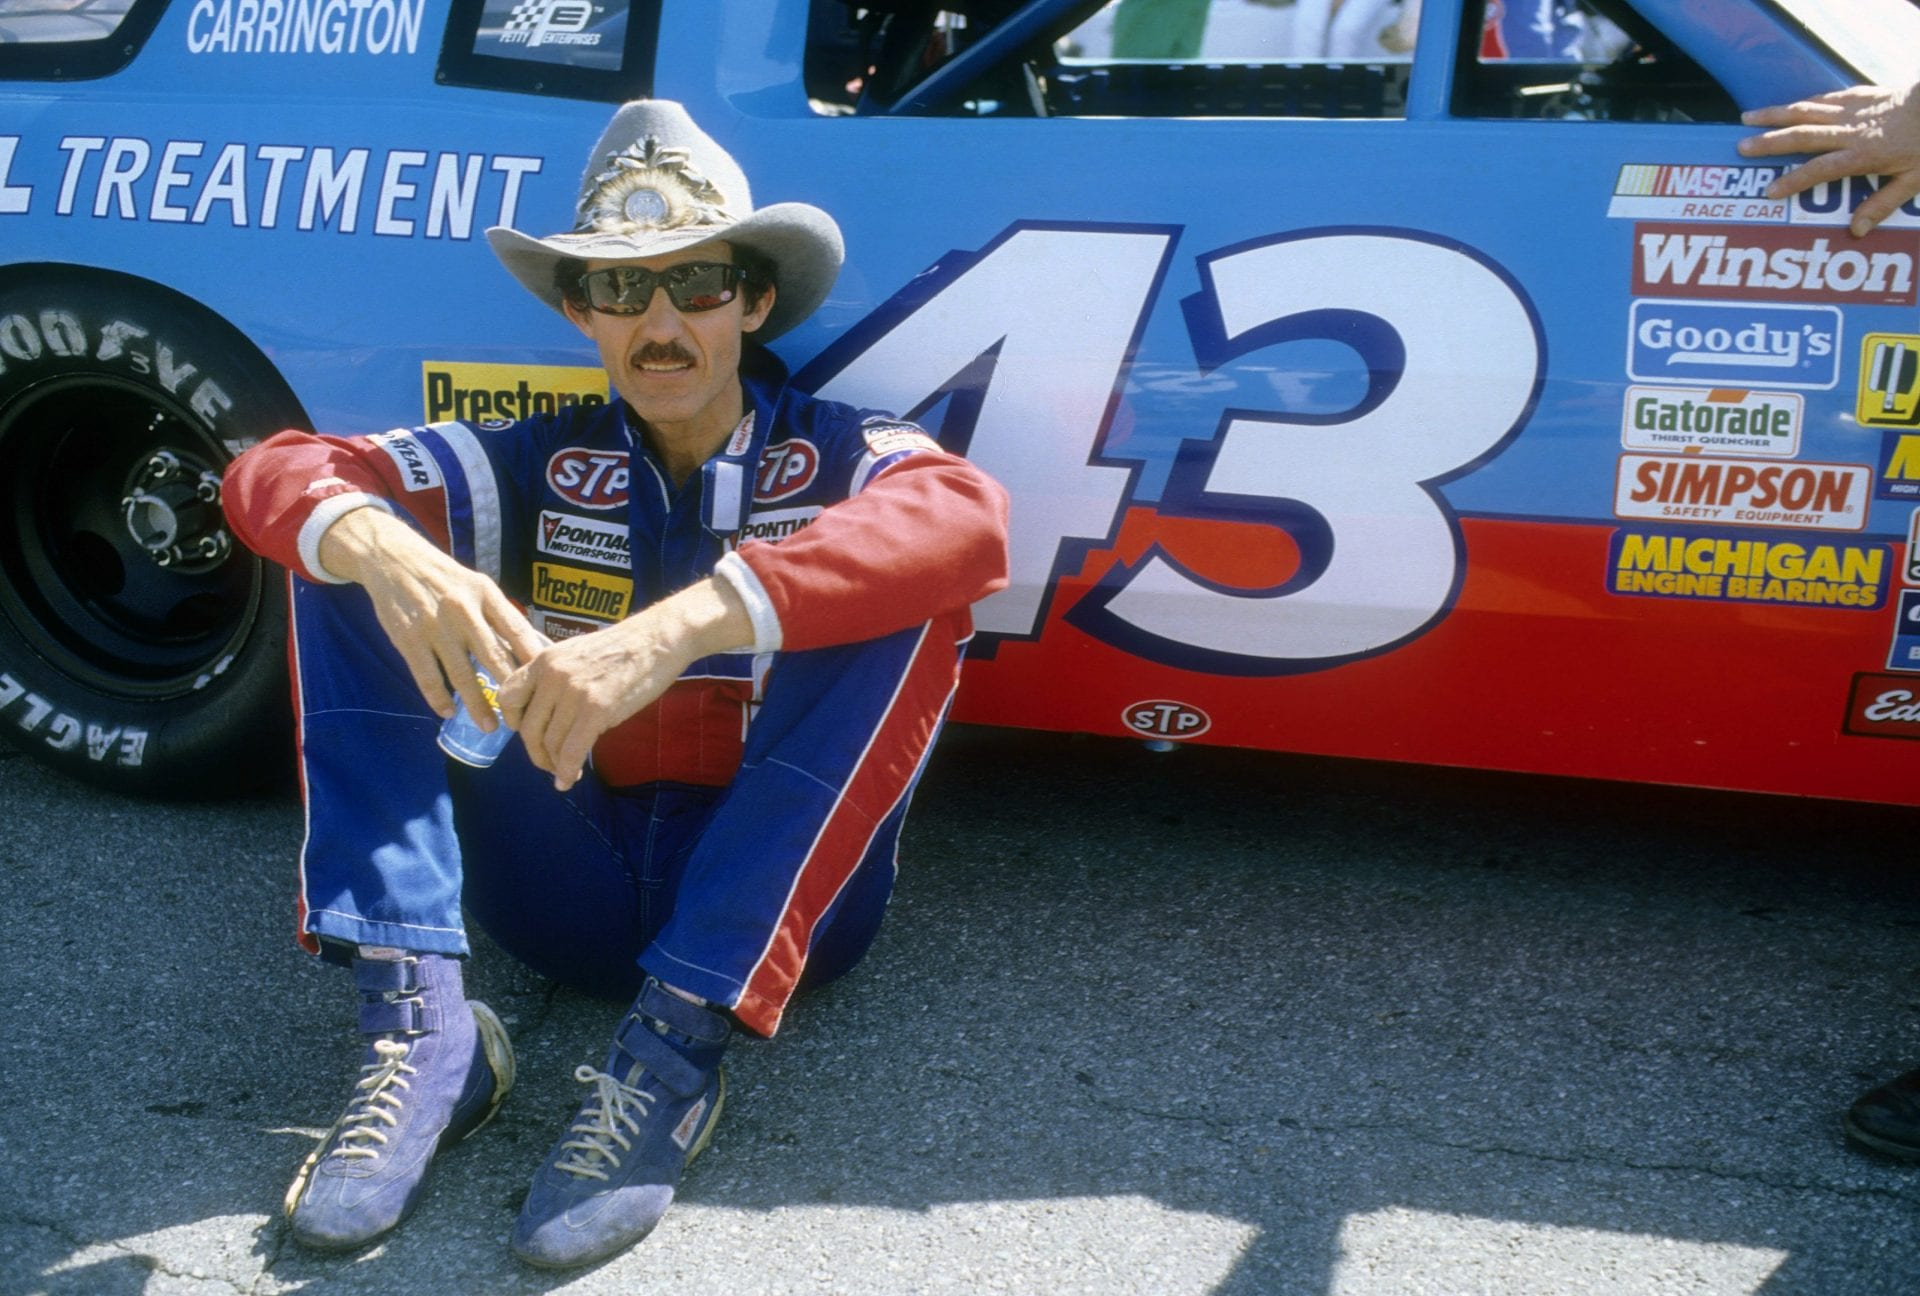 Richard Petty, NASCAR